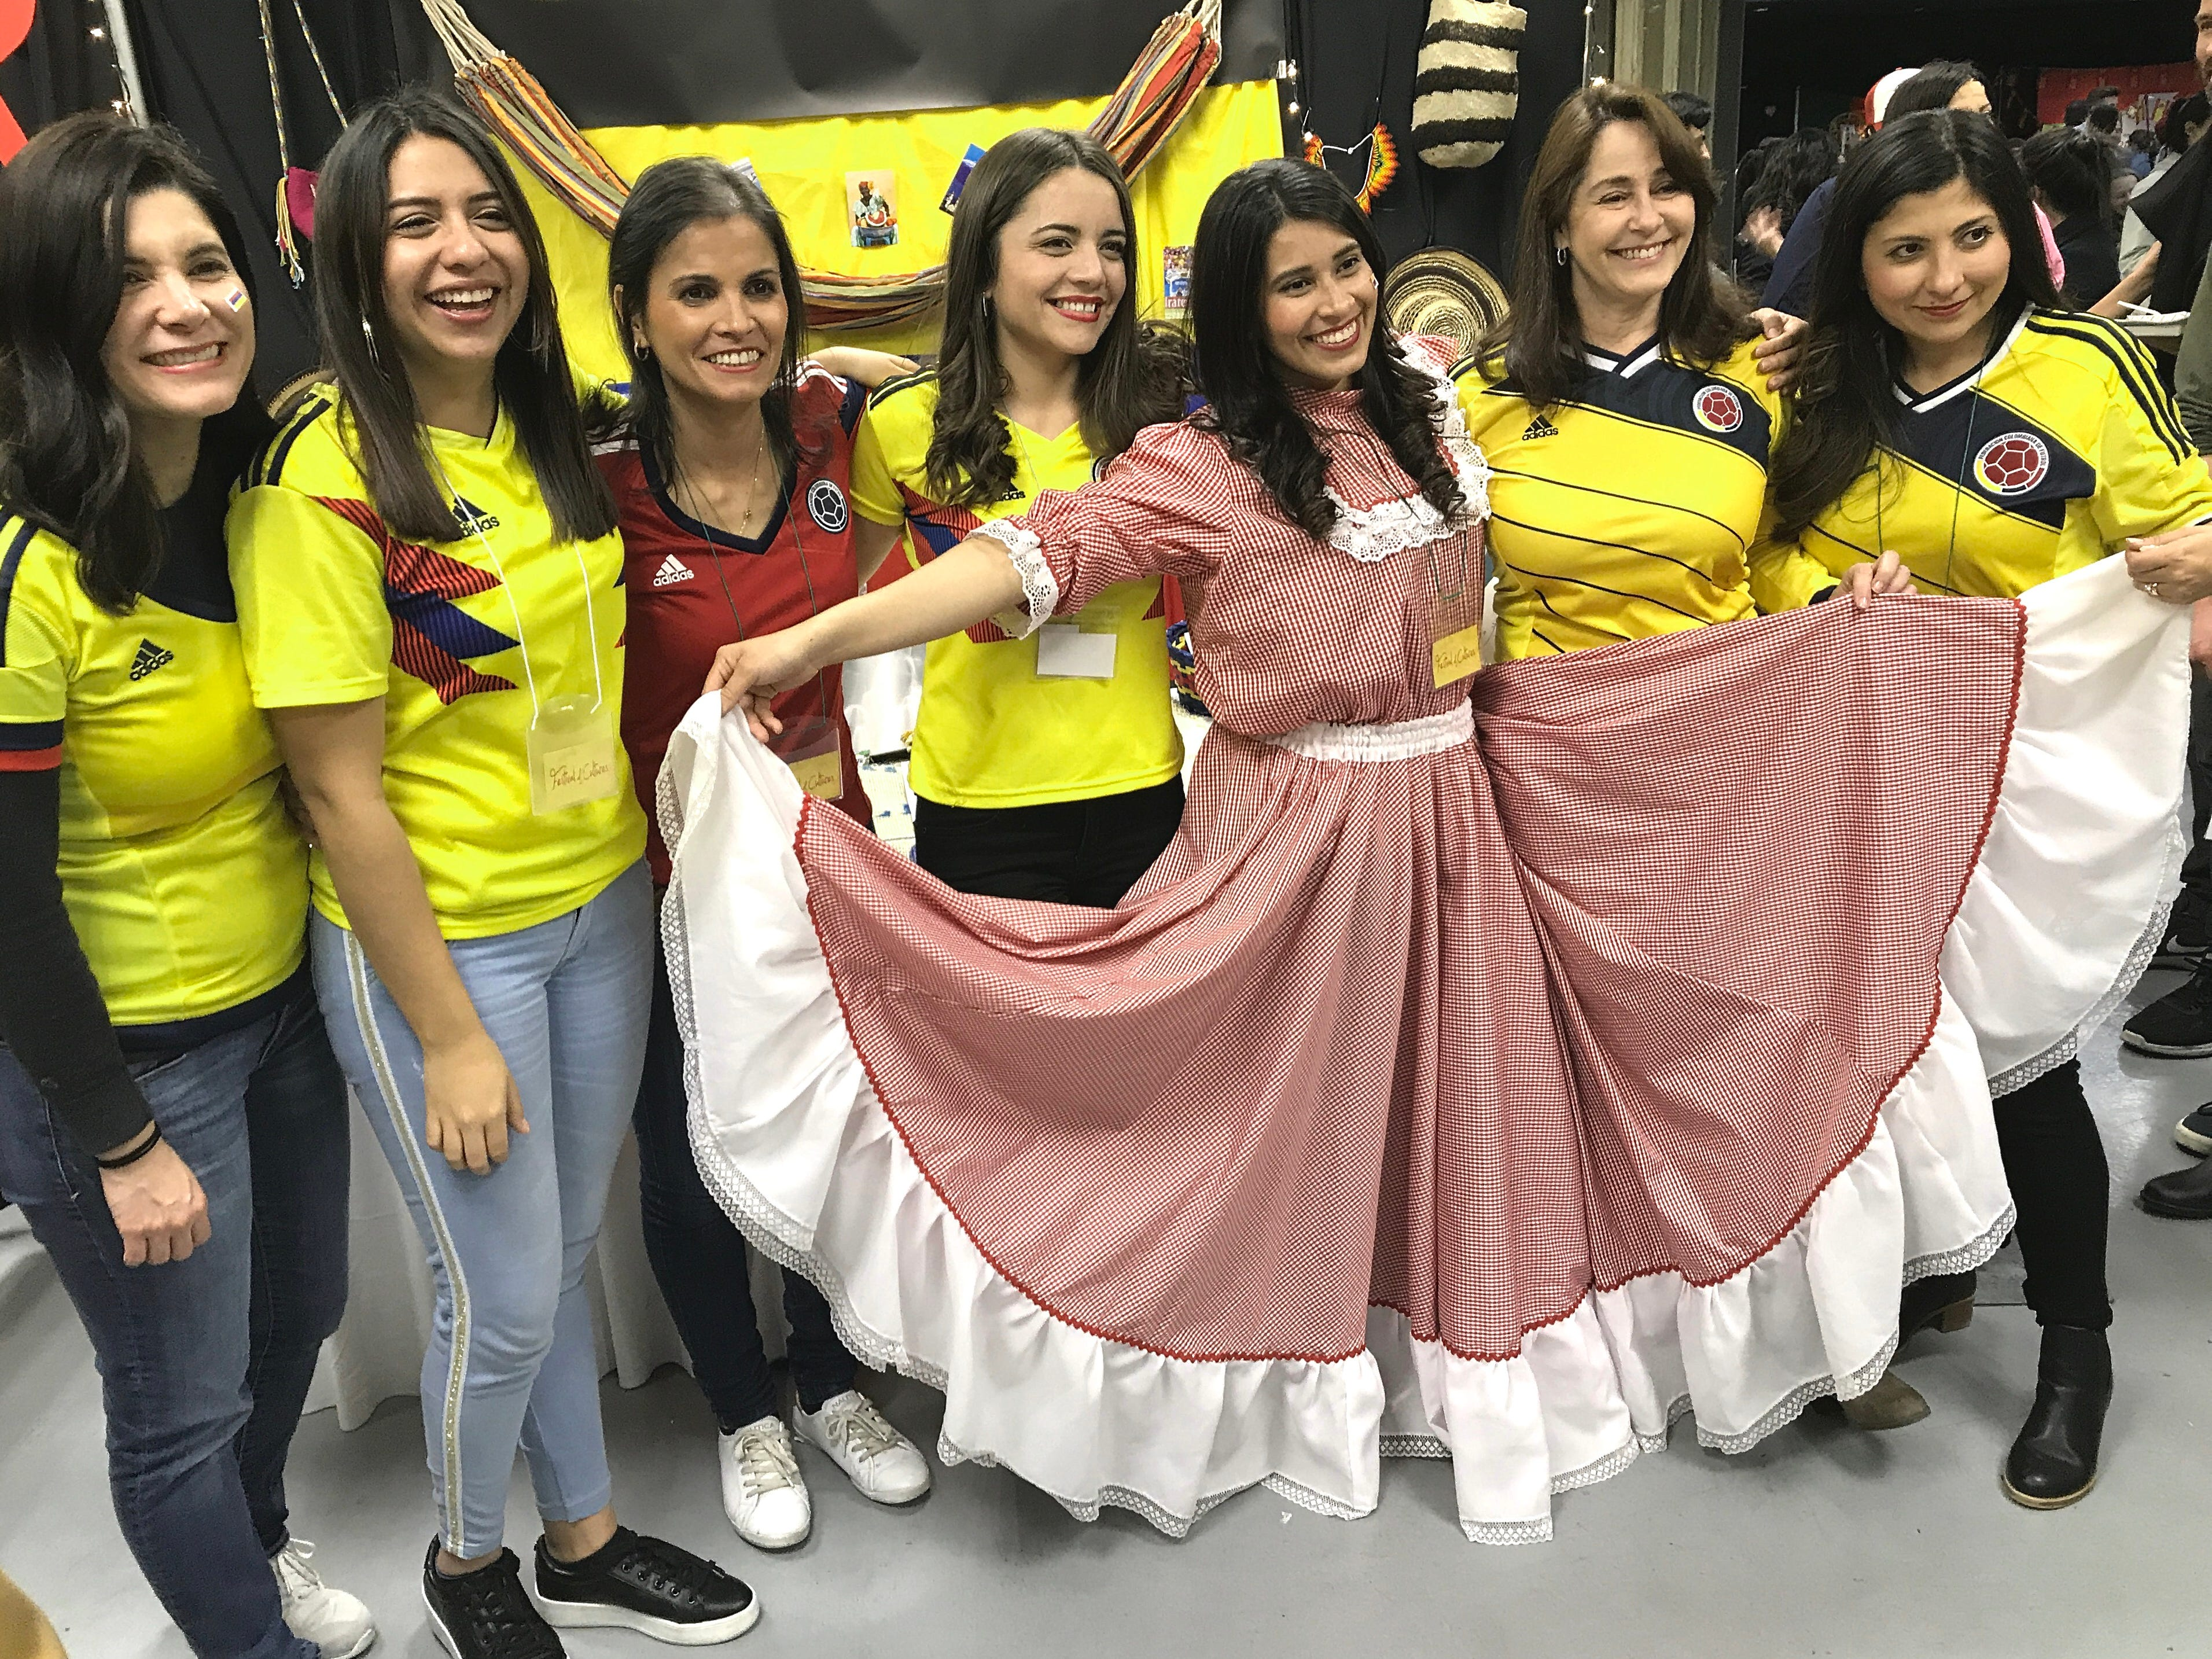 Bethel School of Supernatural Ministry students pose in front of the Colombia table during the annual Festival of Cultures in the Redding Civic Auditorium on Feb. 9, 2019.